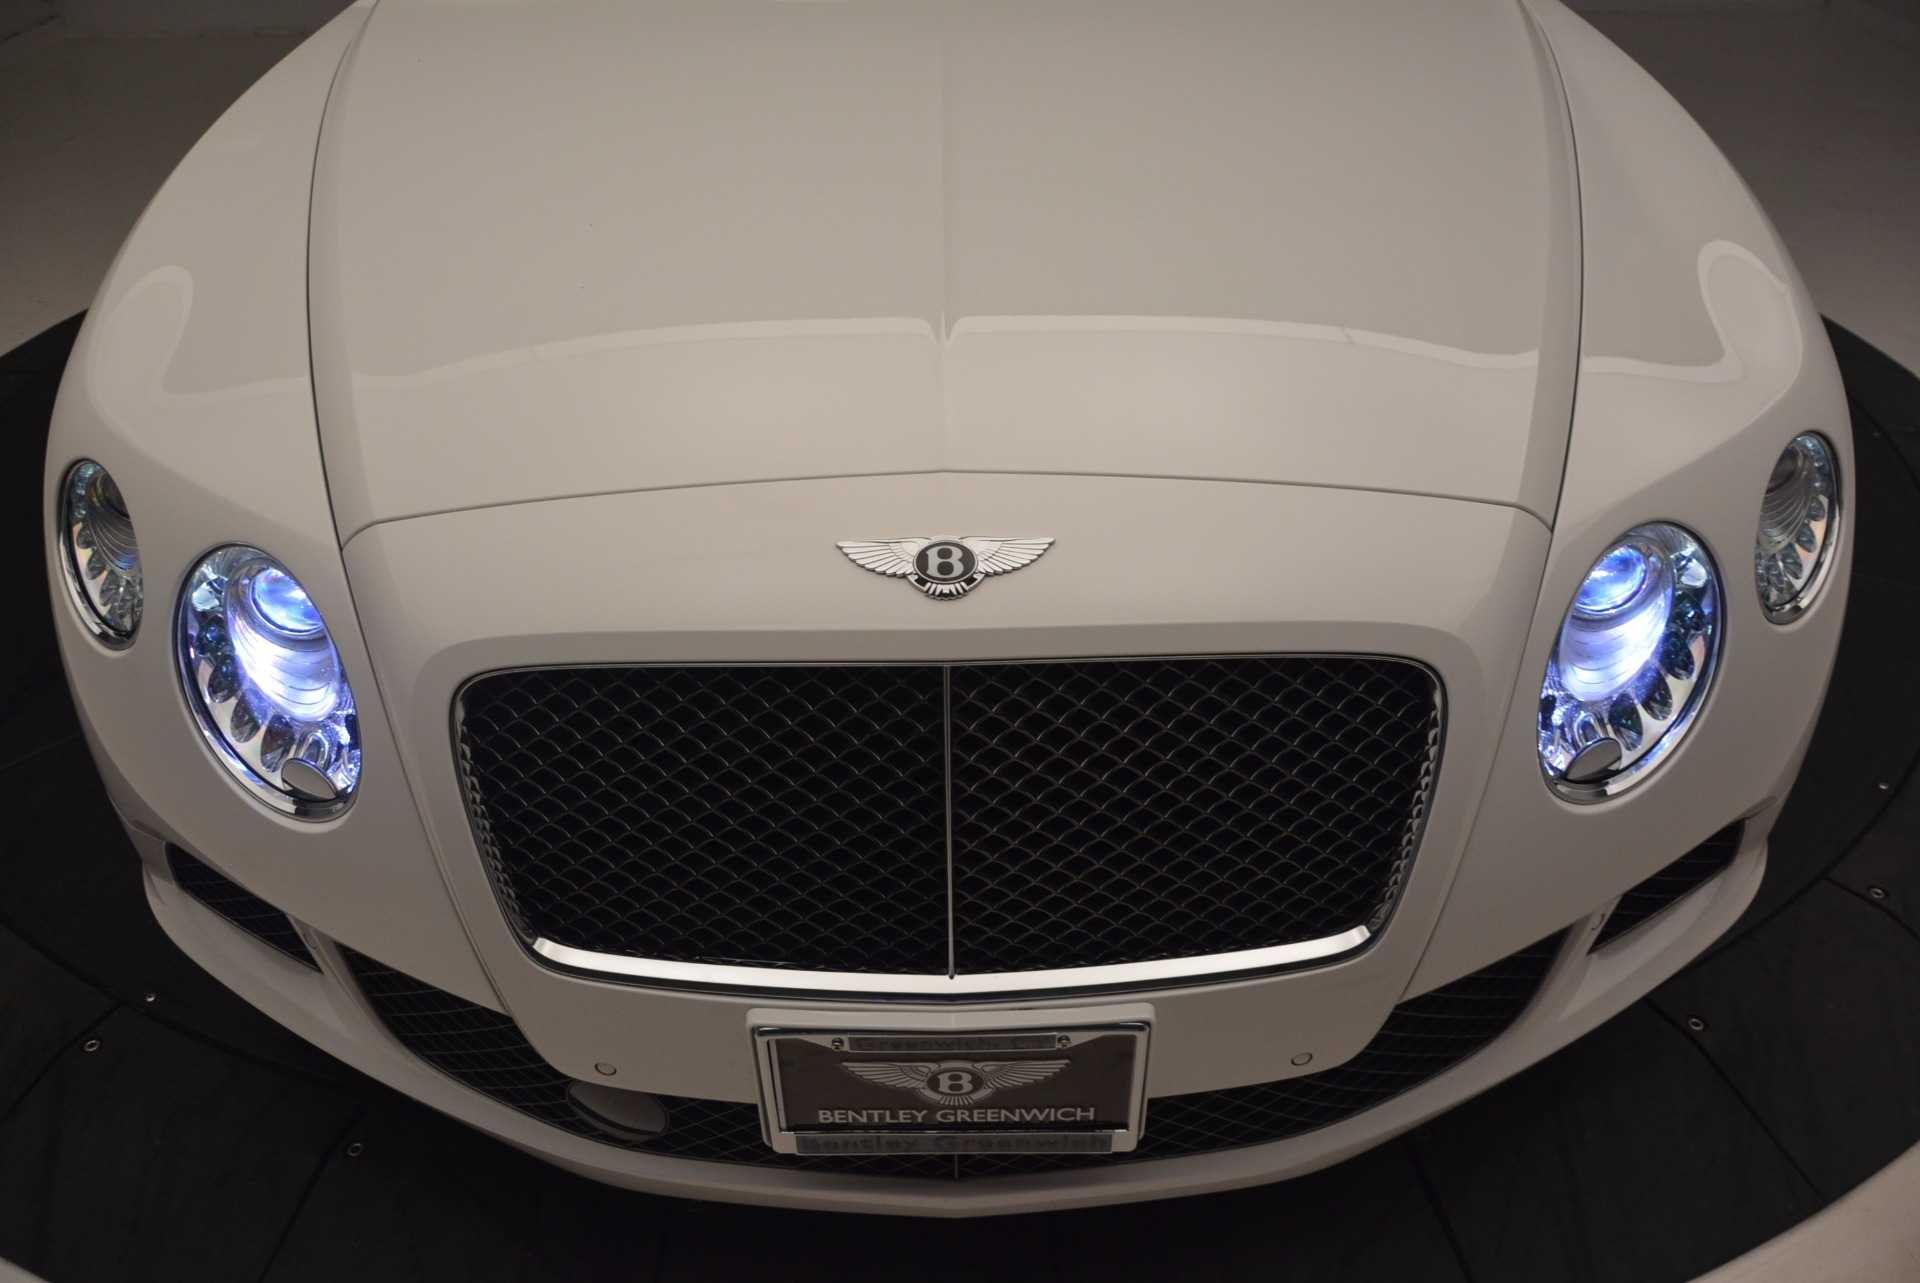 Used 2014 Bentley Continental GT Speed For Sale In Westport, CT 1102_p15